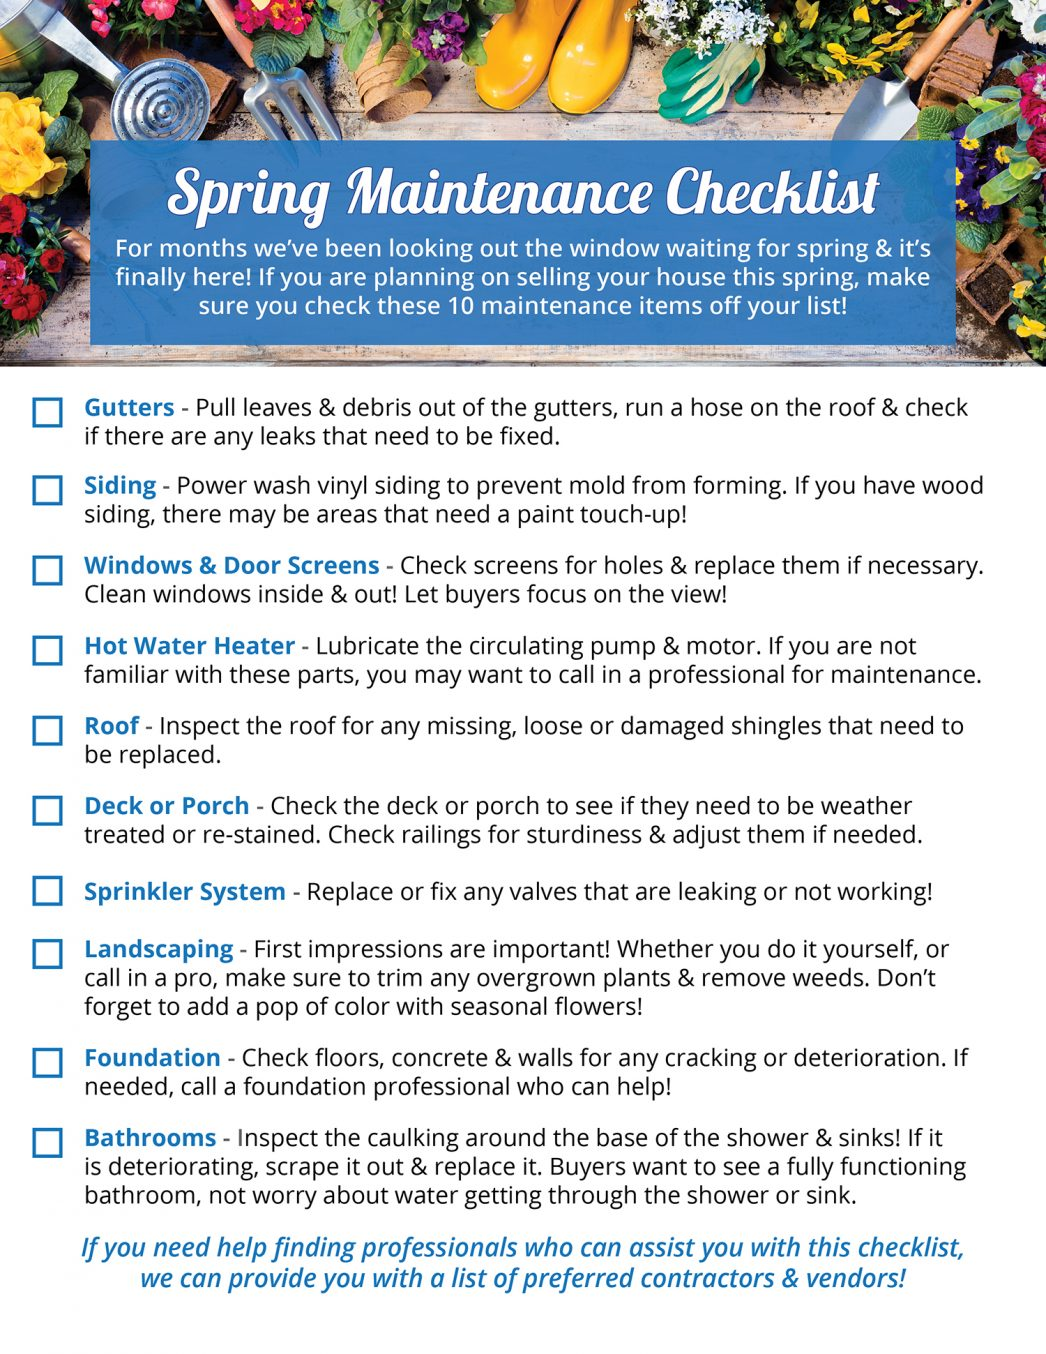 Your Homes Spring Maintenance Checklist [INFOGRAPHIC] | MyKCM